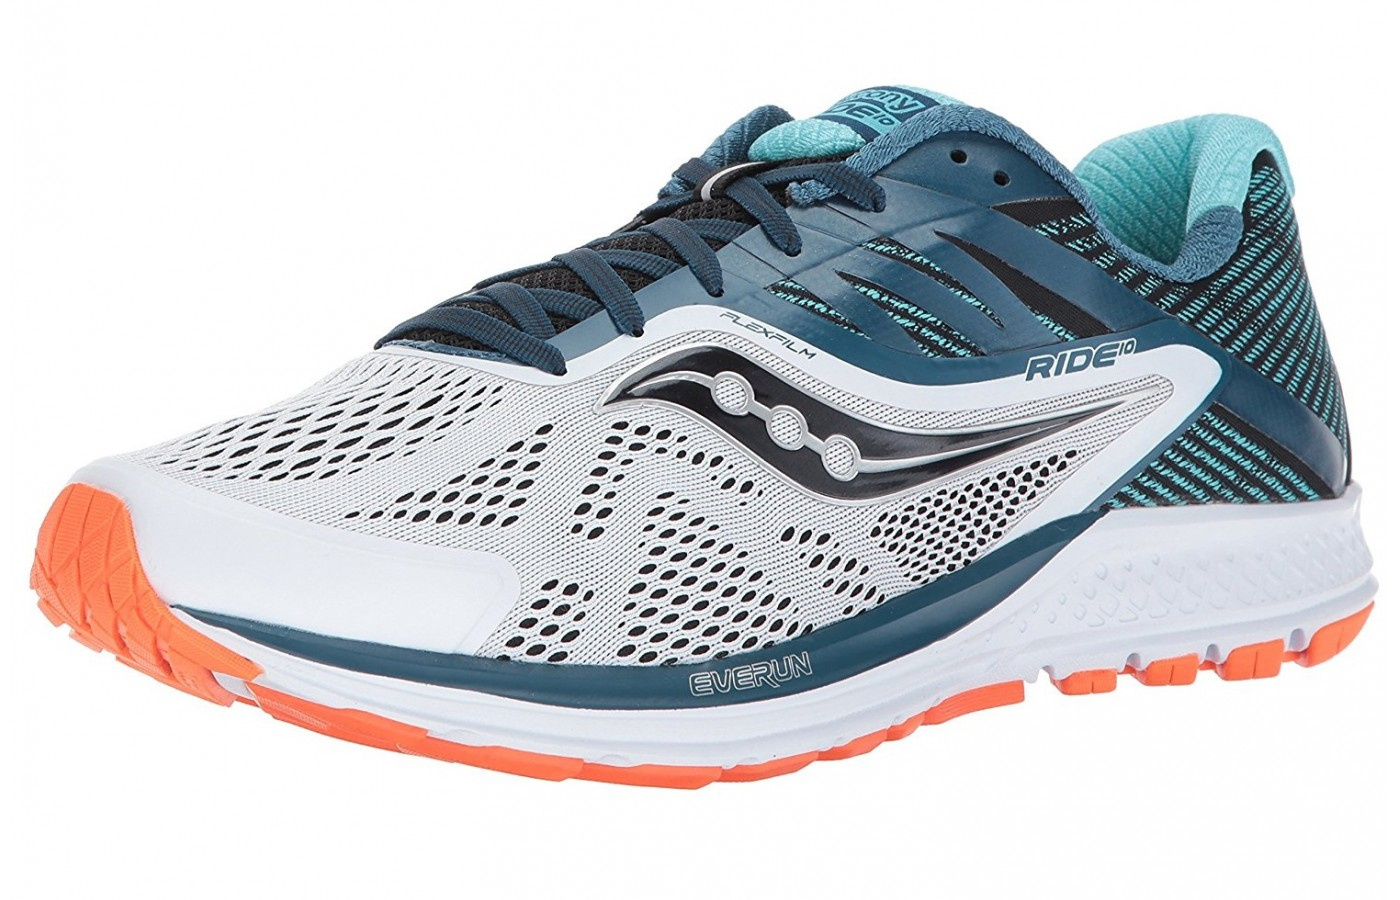 Saucony Ride 10 Side